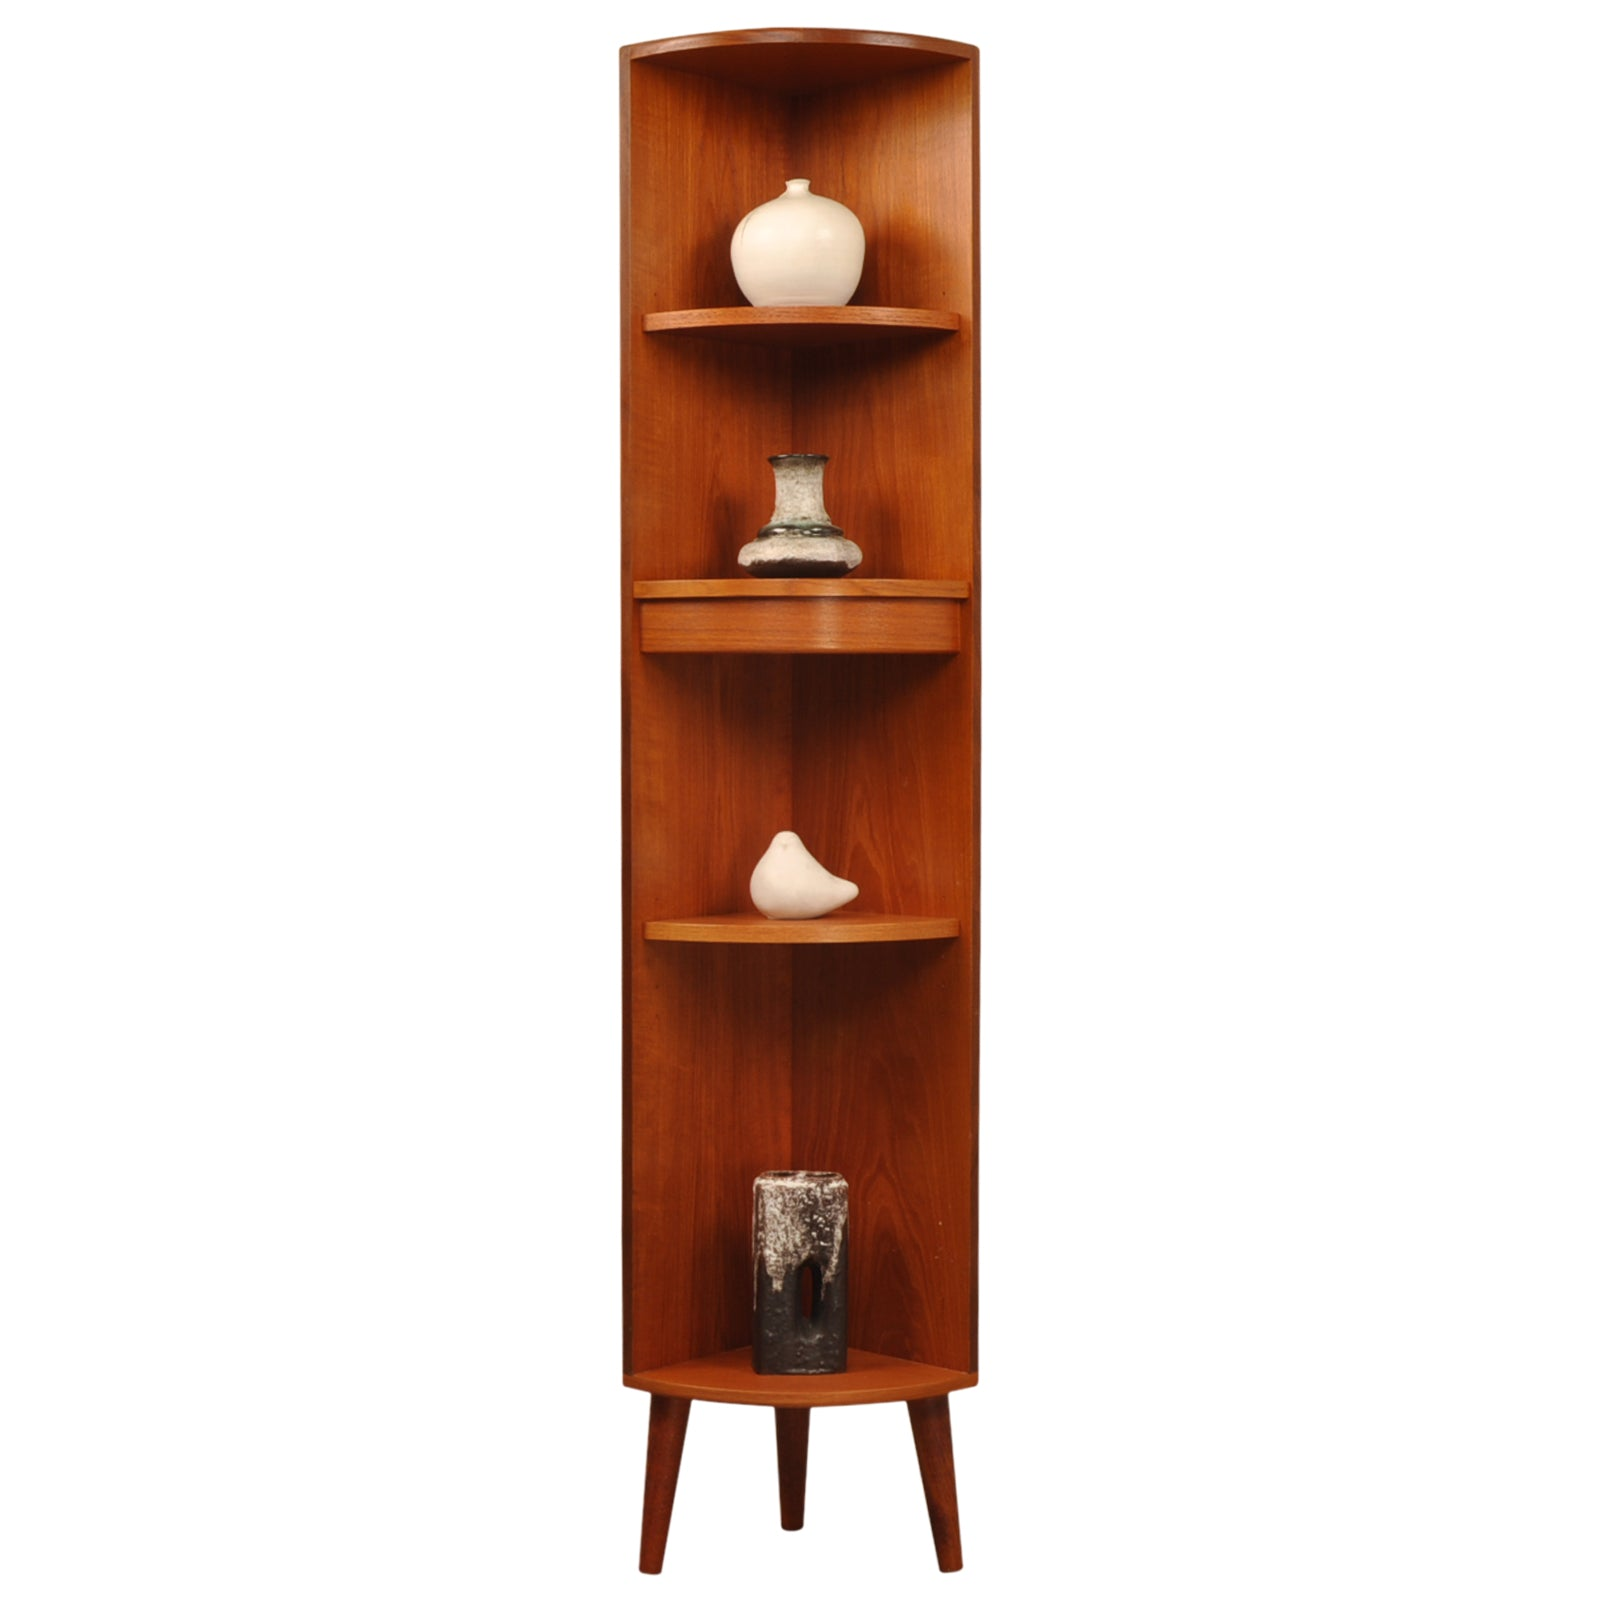 G Plan Fresco Tall Corner Display Unit / Plantstand in teak